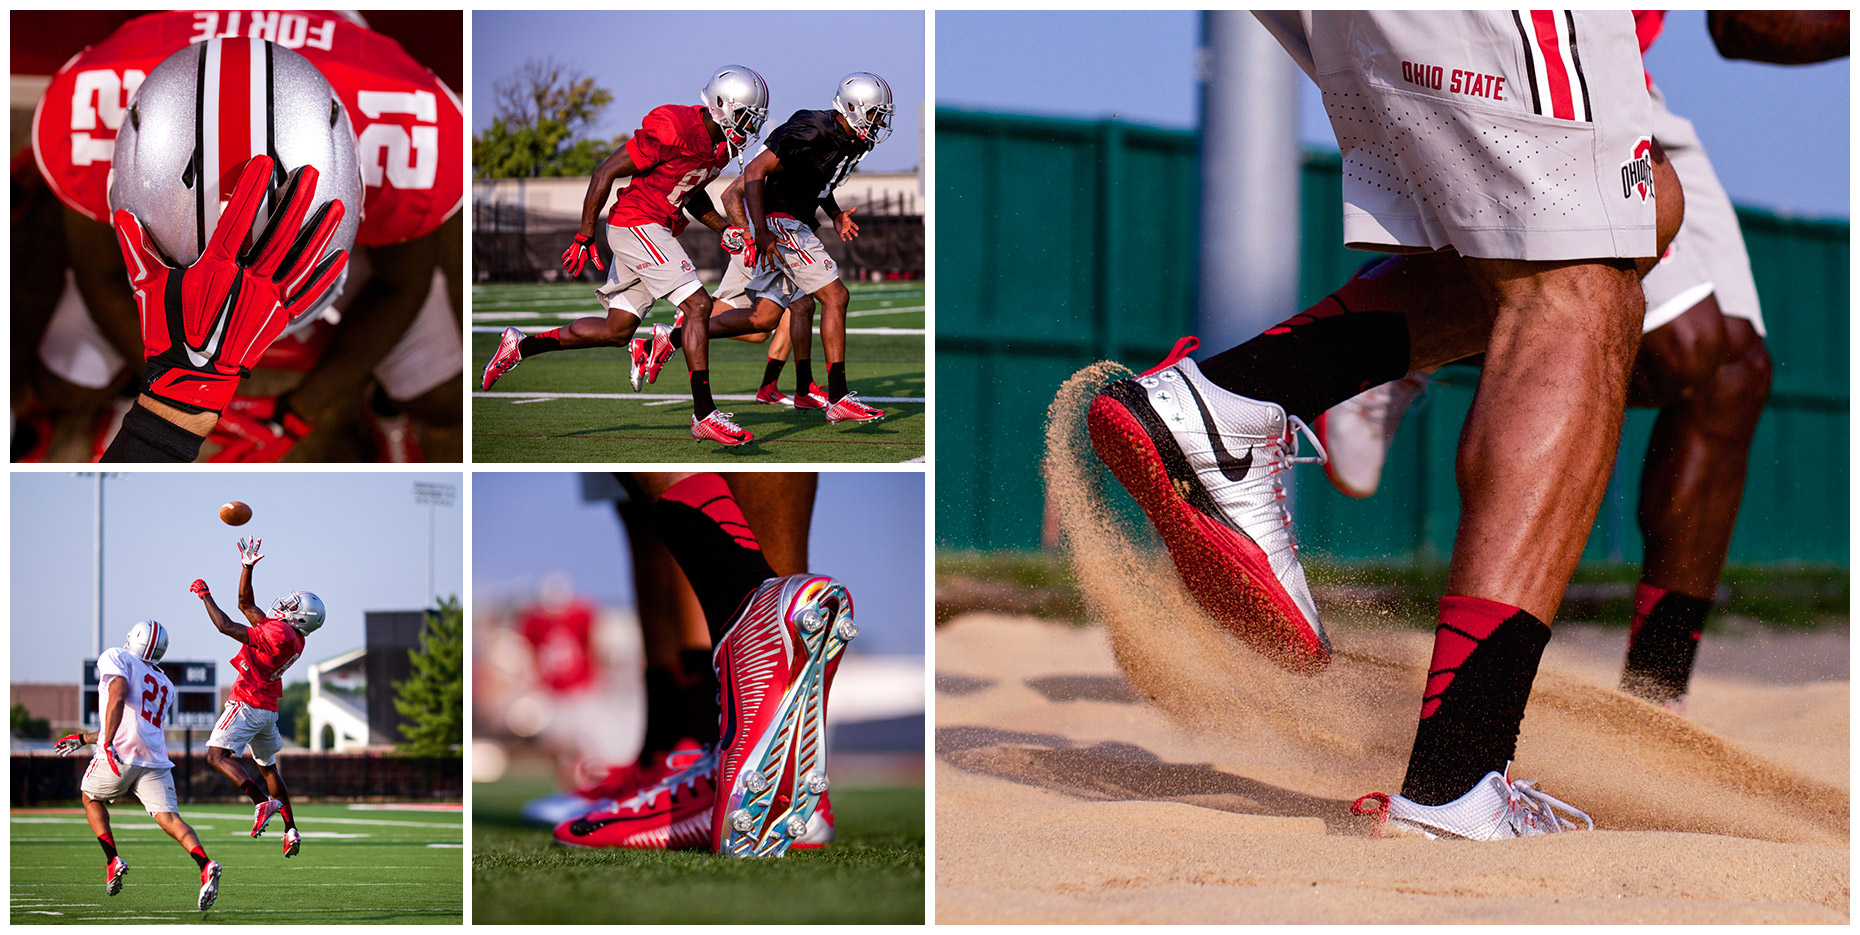 Ohio State Buckeyes | Project for Nike Digital